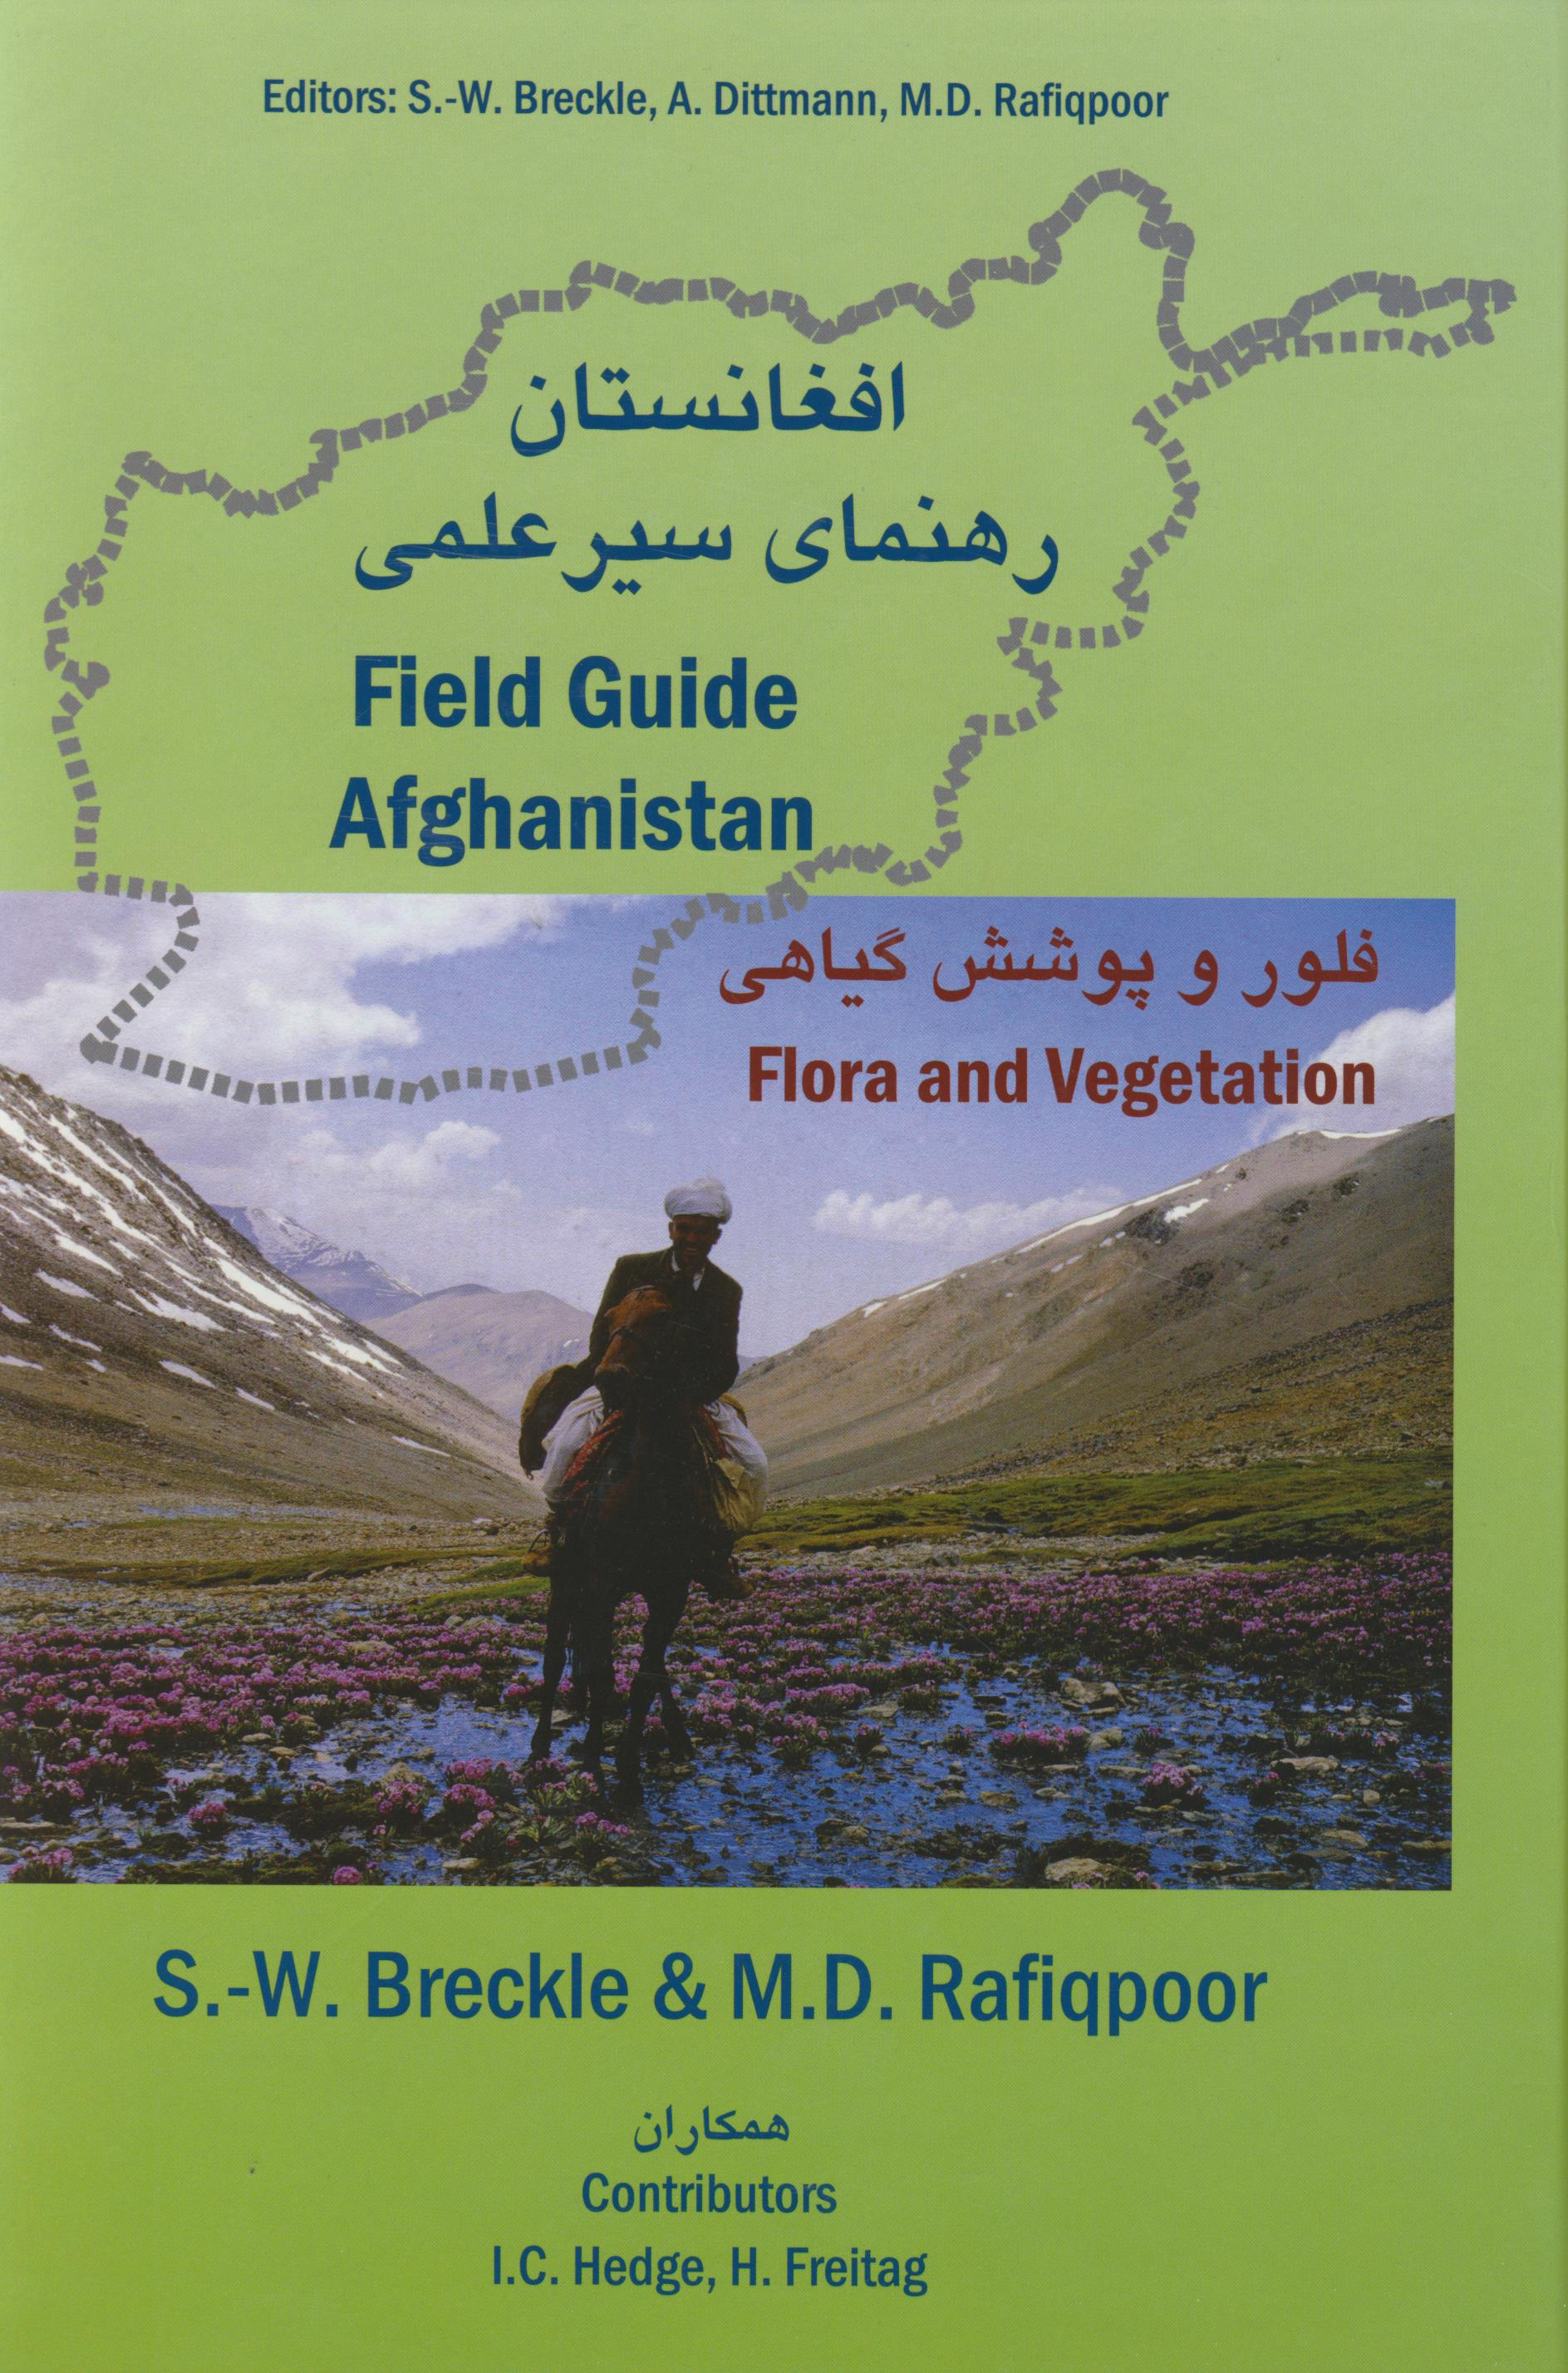 field guide afghanistan cover